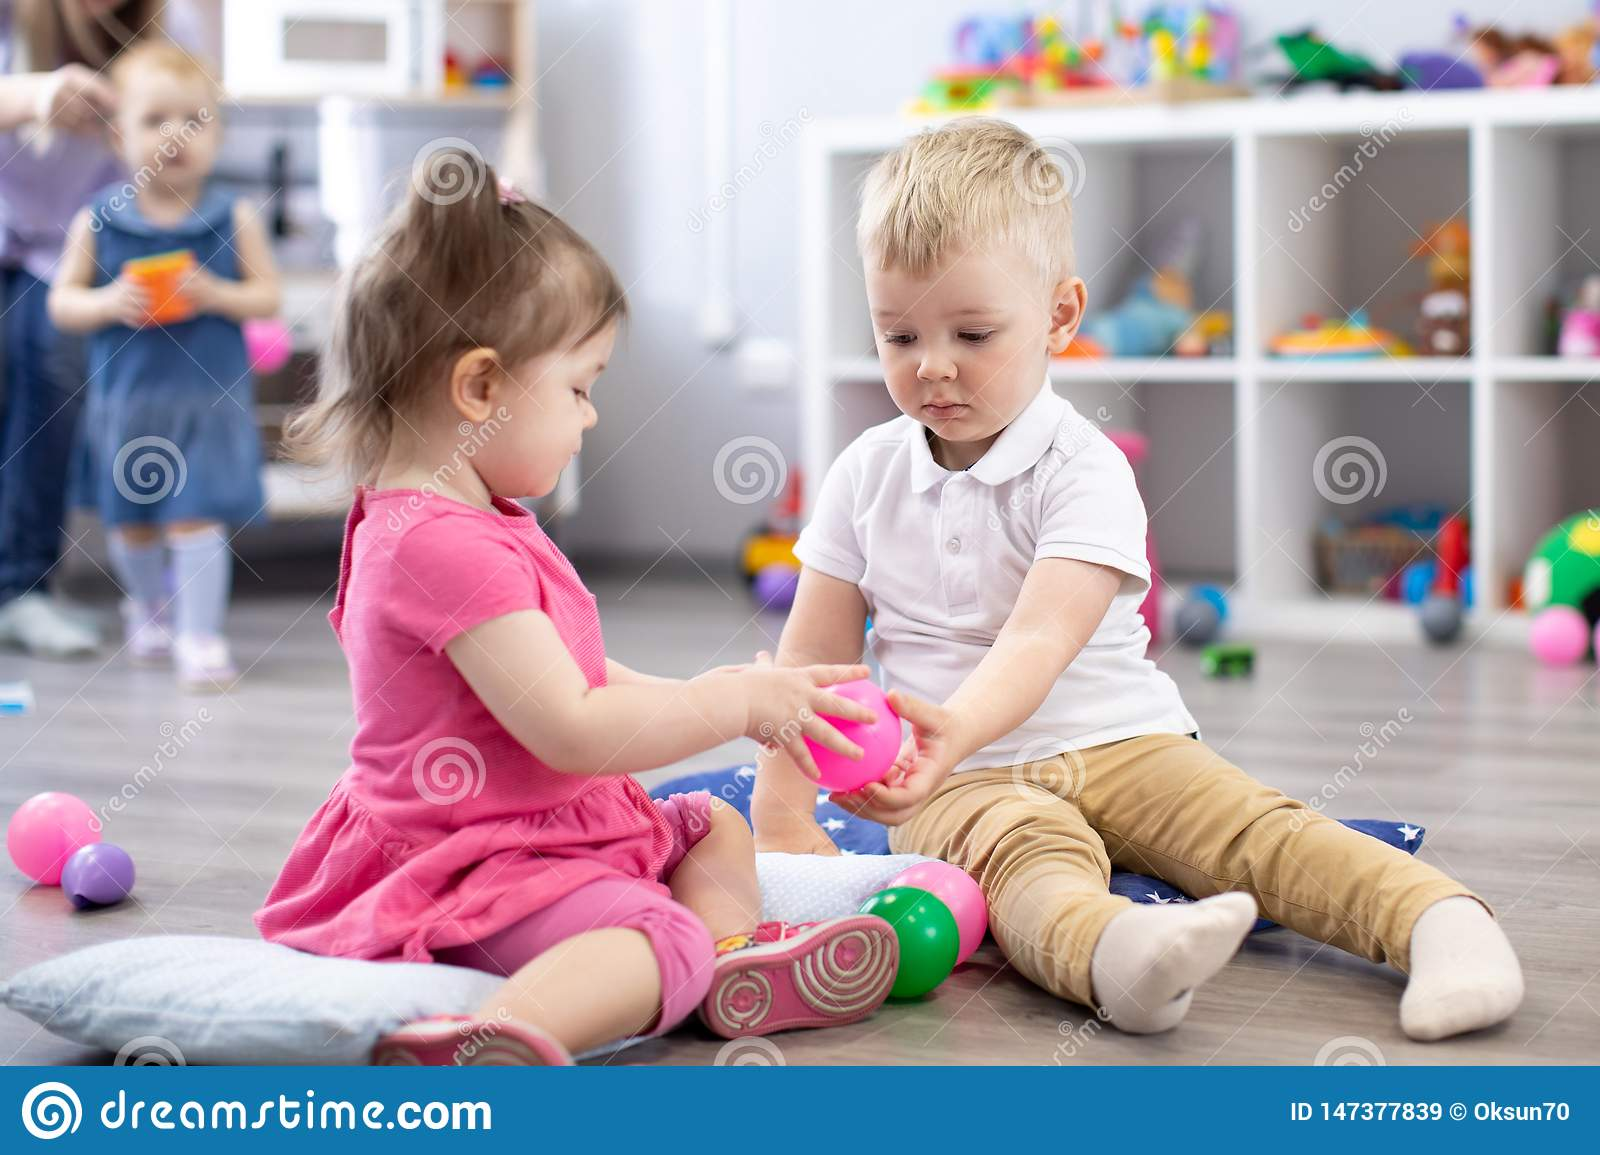 Little toddlers boy and a girl playing together in nursery room. Preschool children in day care centre